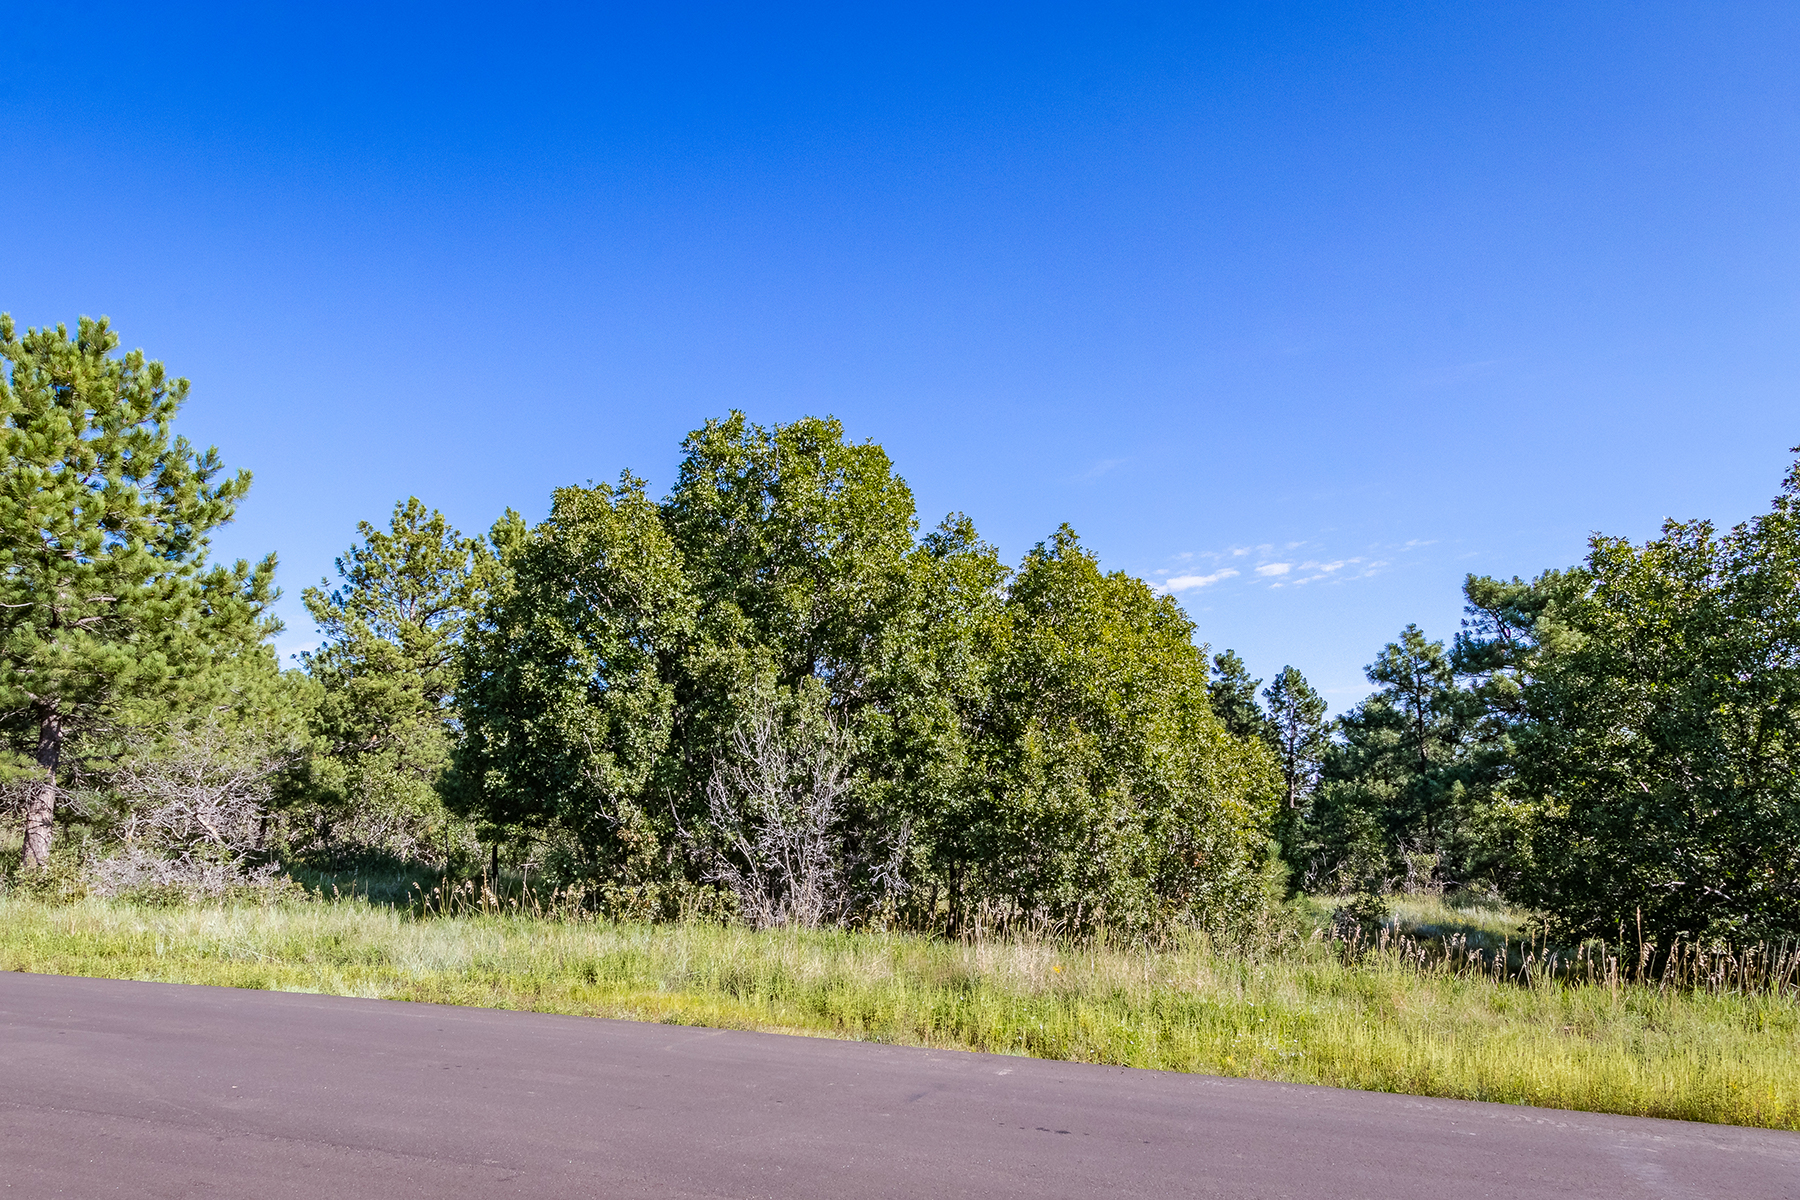 Additional photo for property listing at * THE LAST LOT * 1720 Brantfeather Grv Colorado Springs, Colorado 80906 United States